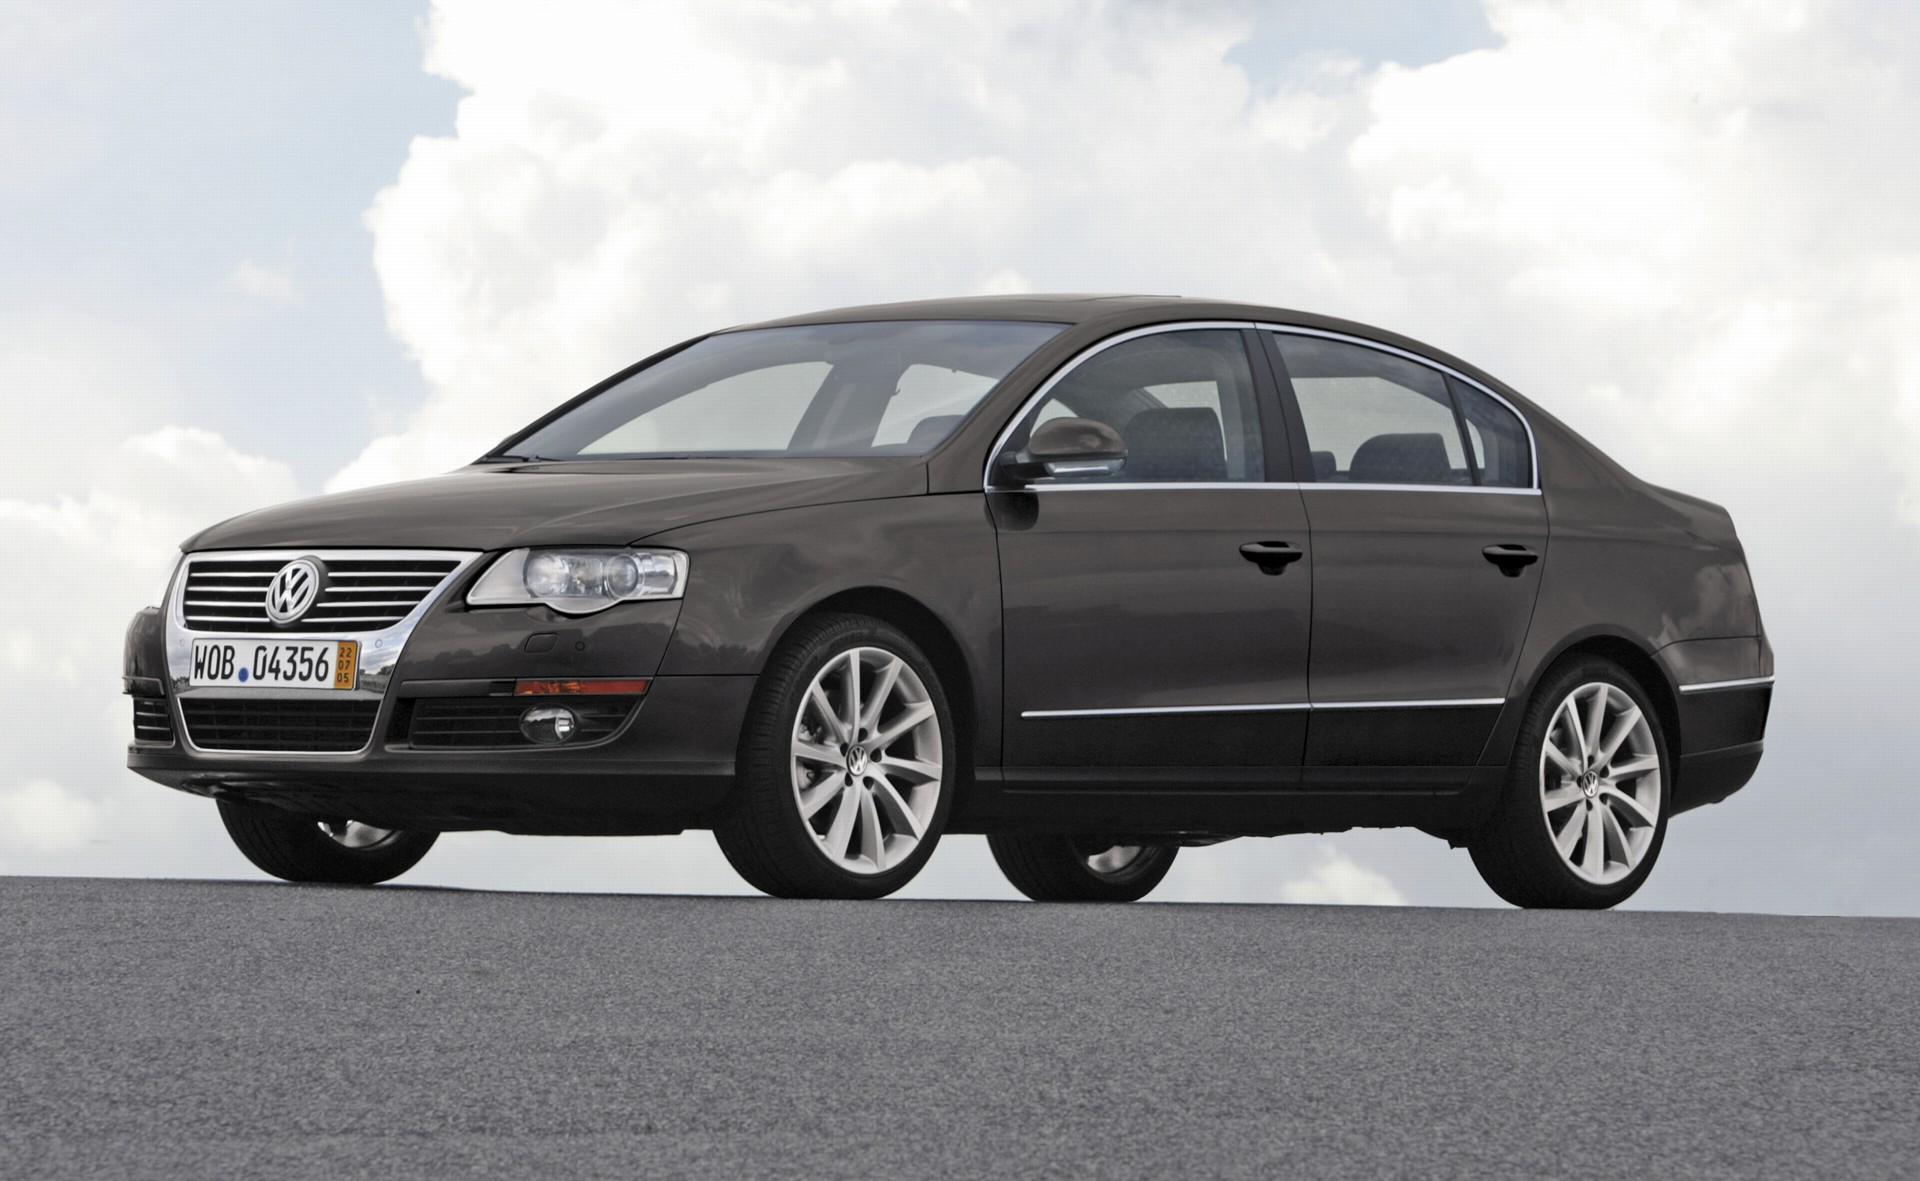 2007 volkswagen passat images photo vw passat manu 07. Black Bedroom Furniture Sets. Home Design Ideas